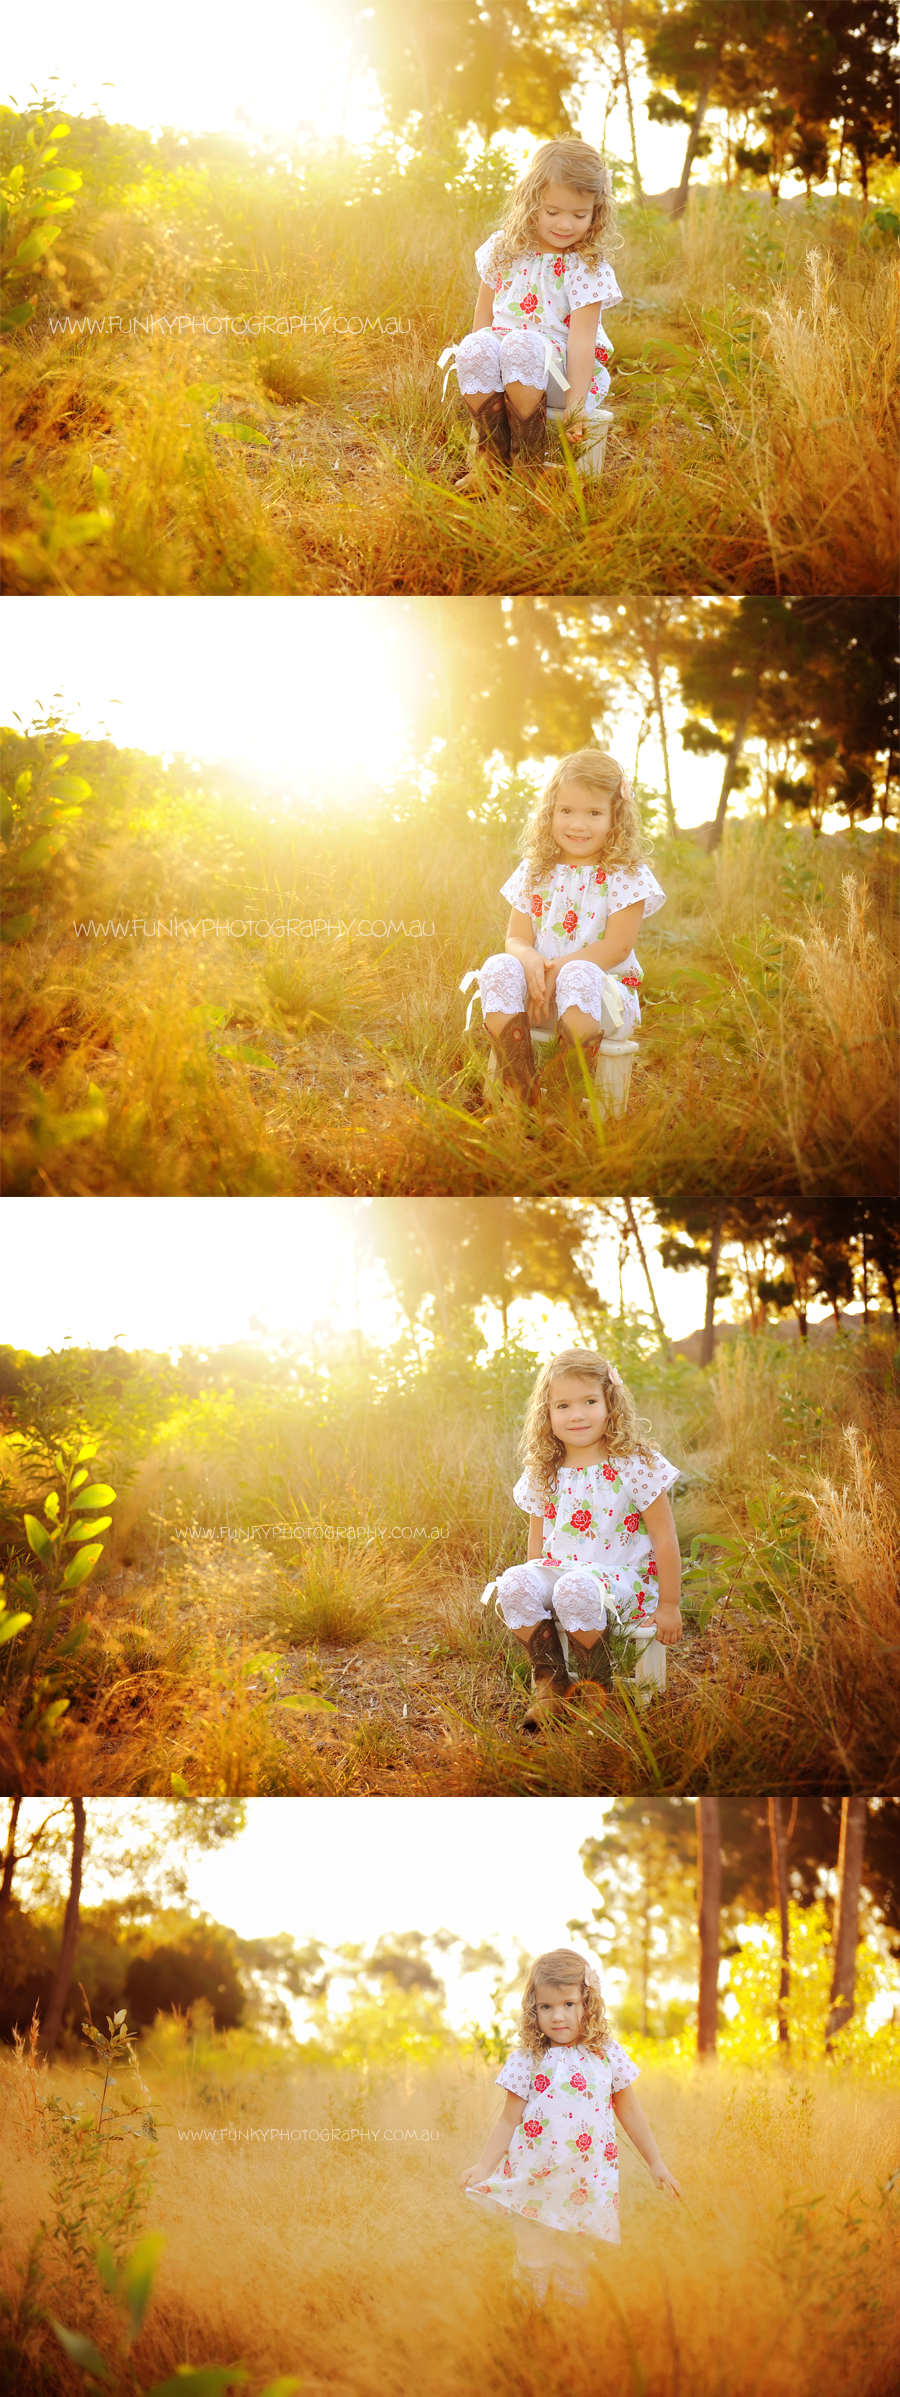 child in a field with sunset